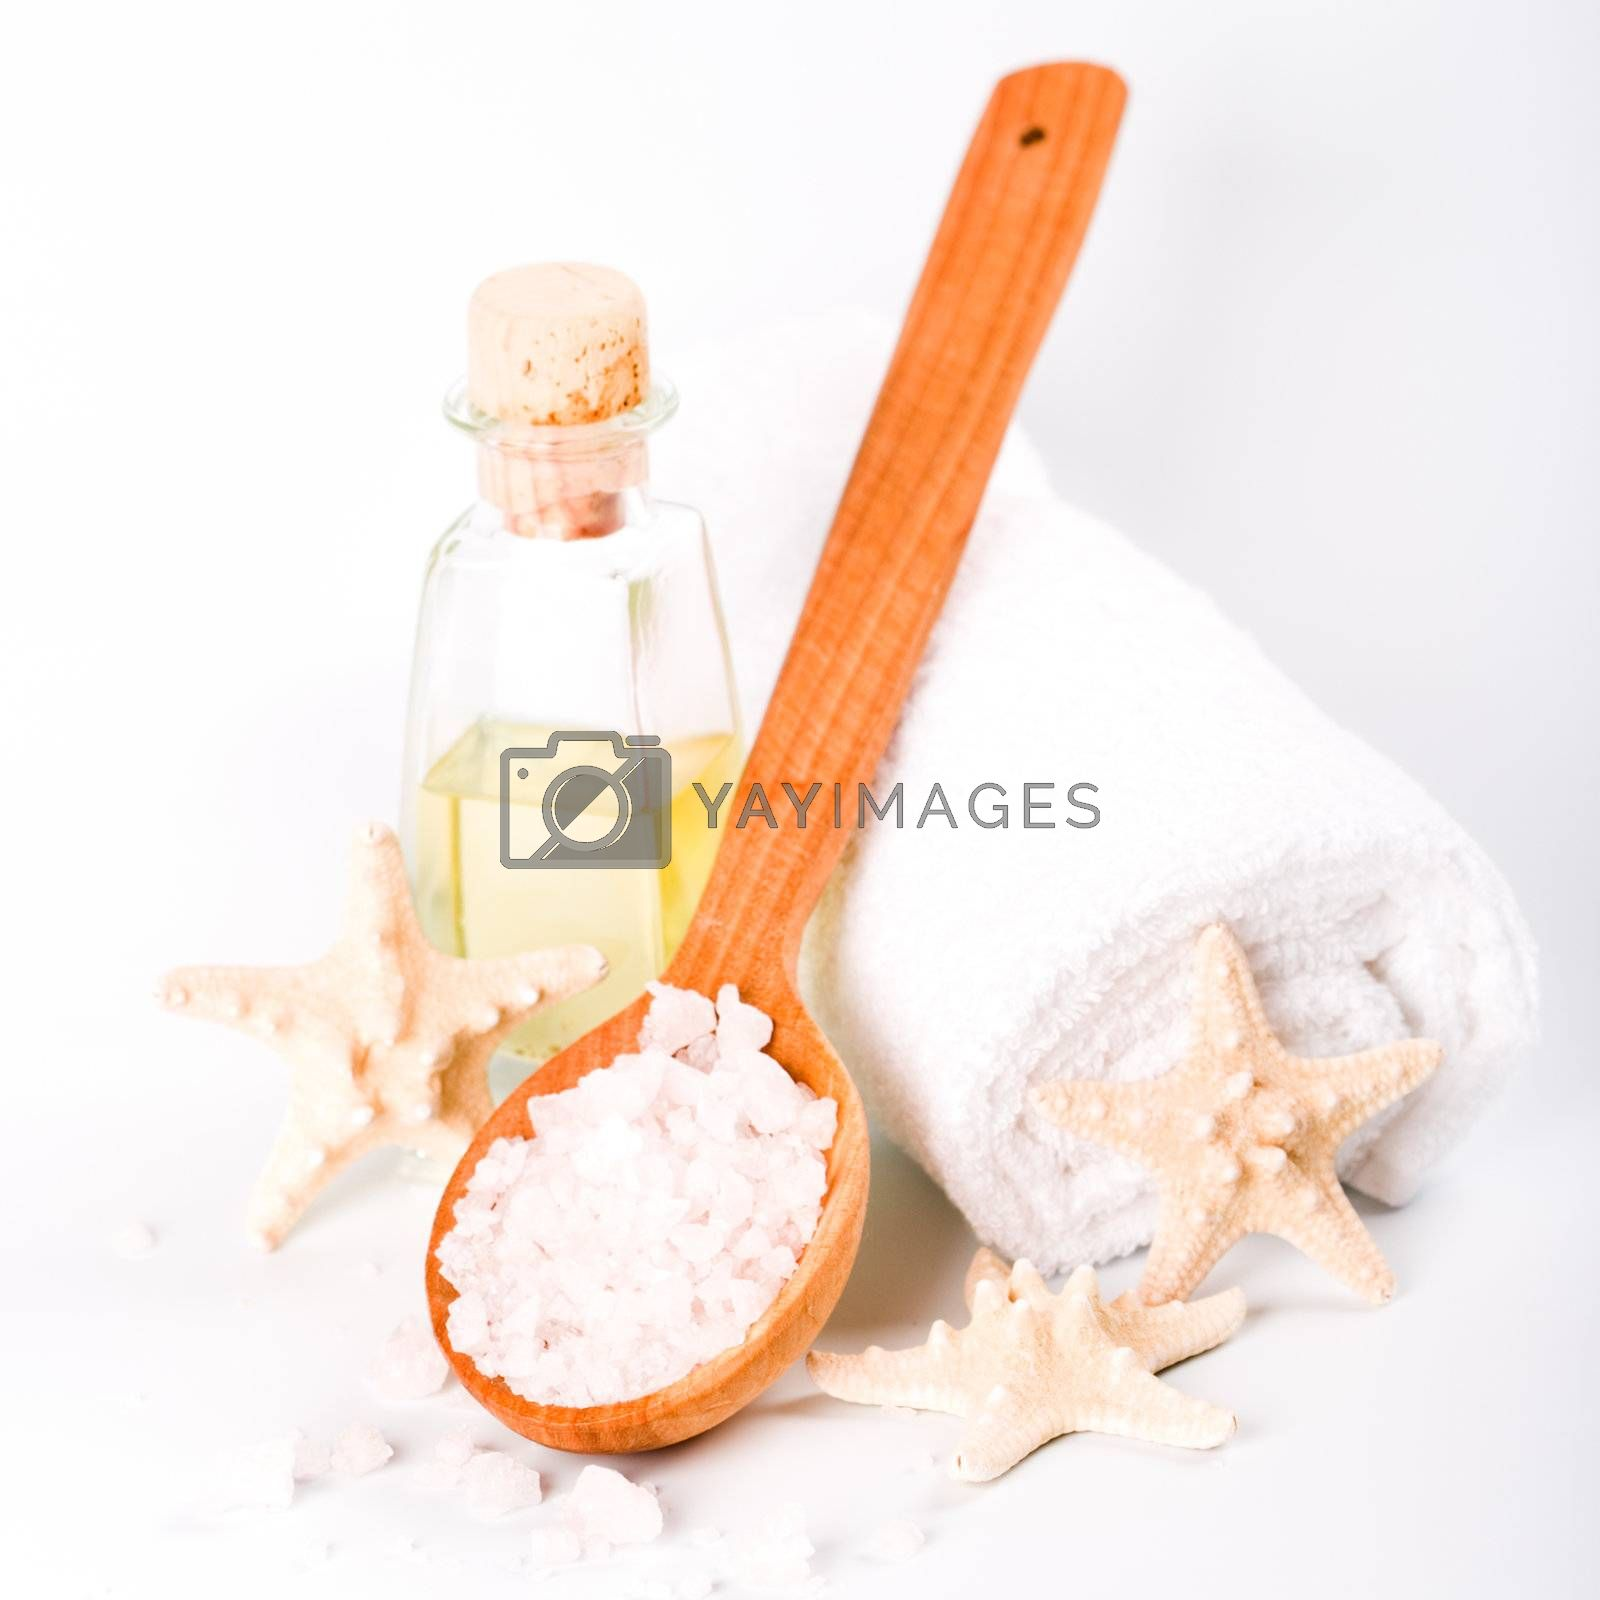 spa products: sea salt on wooden spoon, towel, oil and star